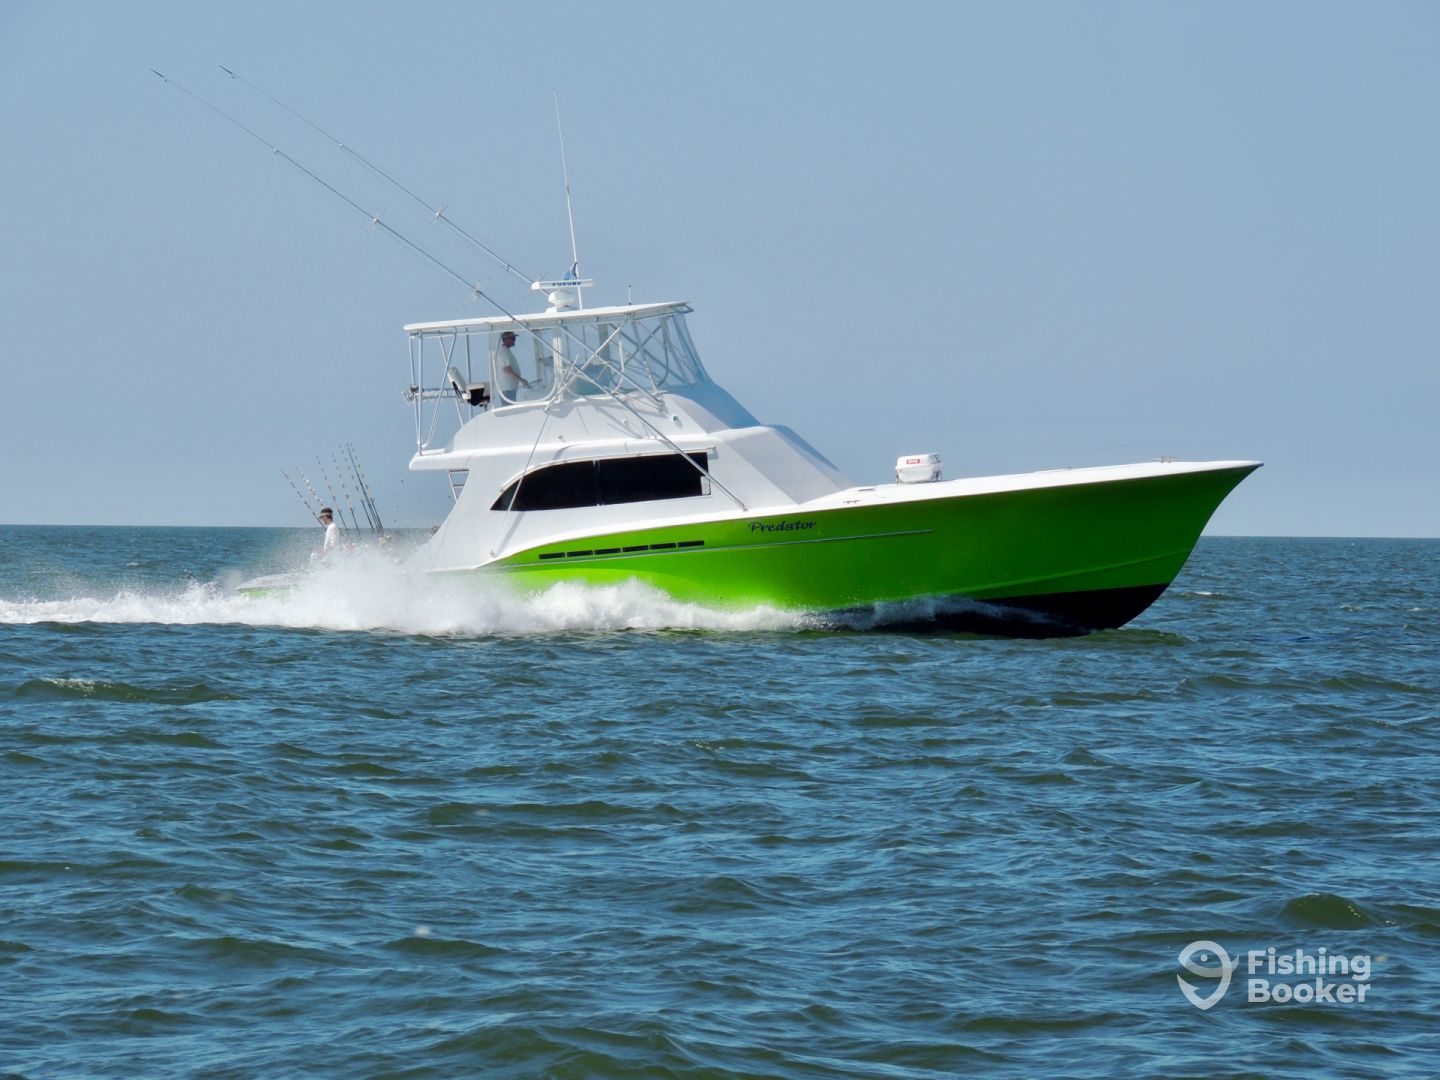 Predator sport fishing hatteras hatteras nc fishingbooker for Best sport fishing boats